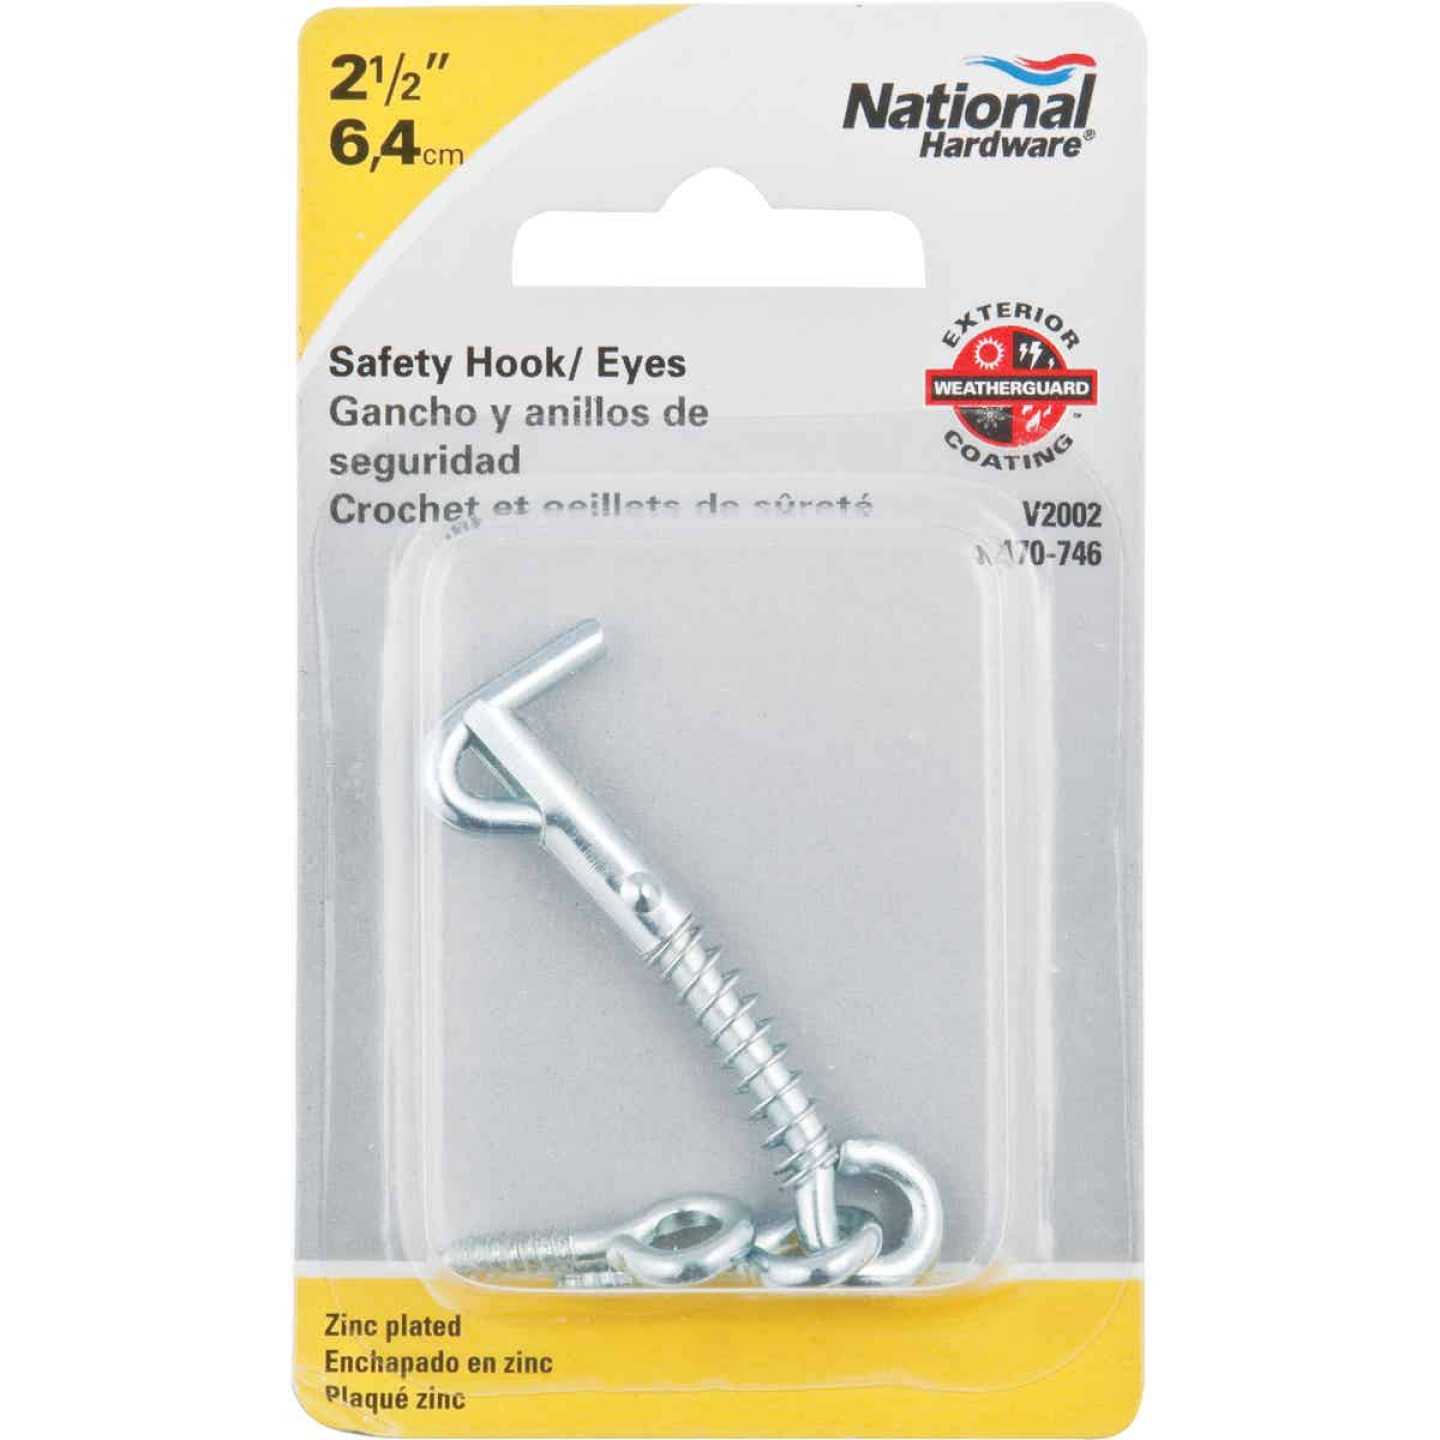 National Steel 2-1/2 In. Safety Gate Hook & Eye Bolt Image 2